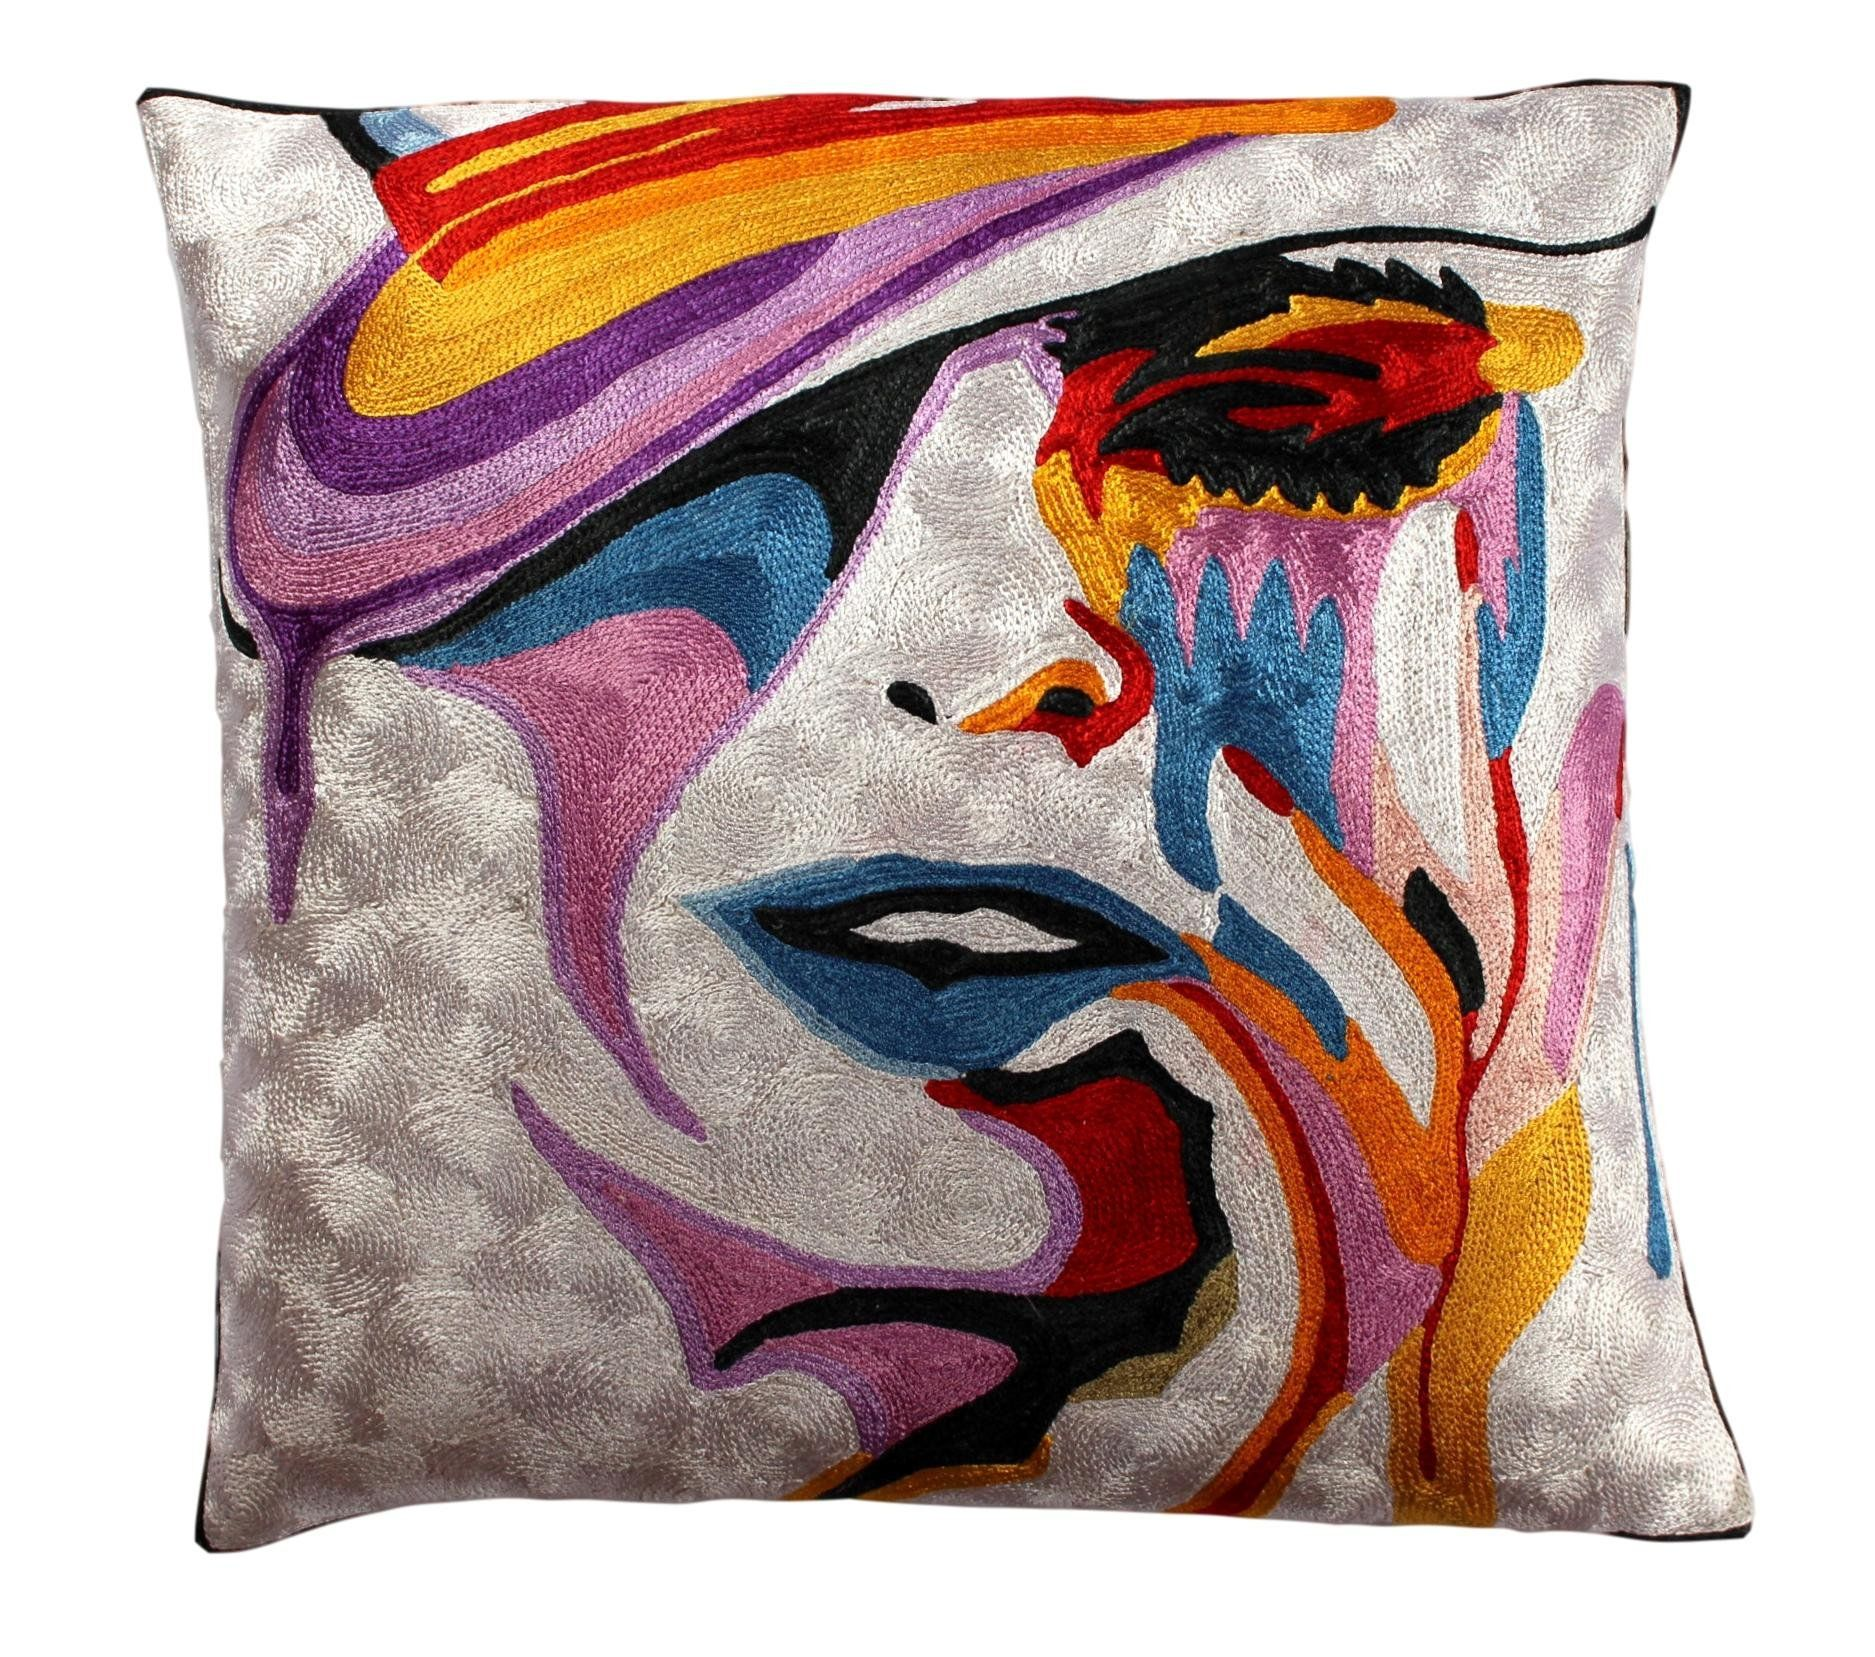 Arte (With images) | Pillows, Pillow